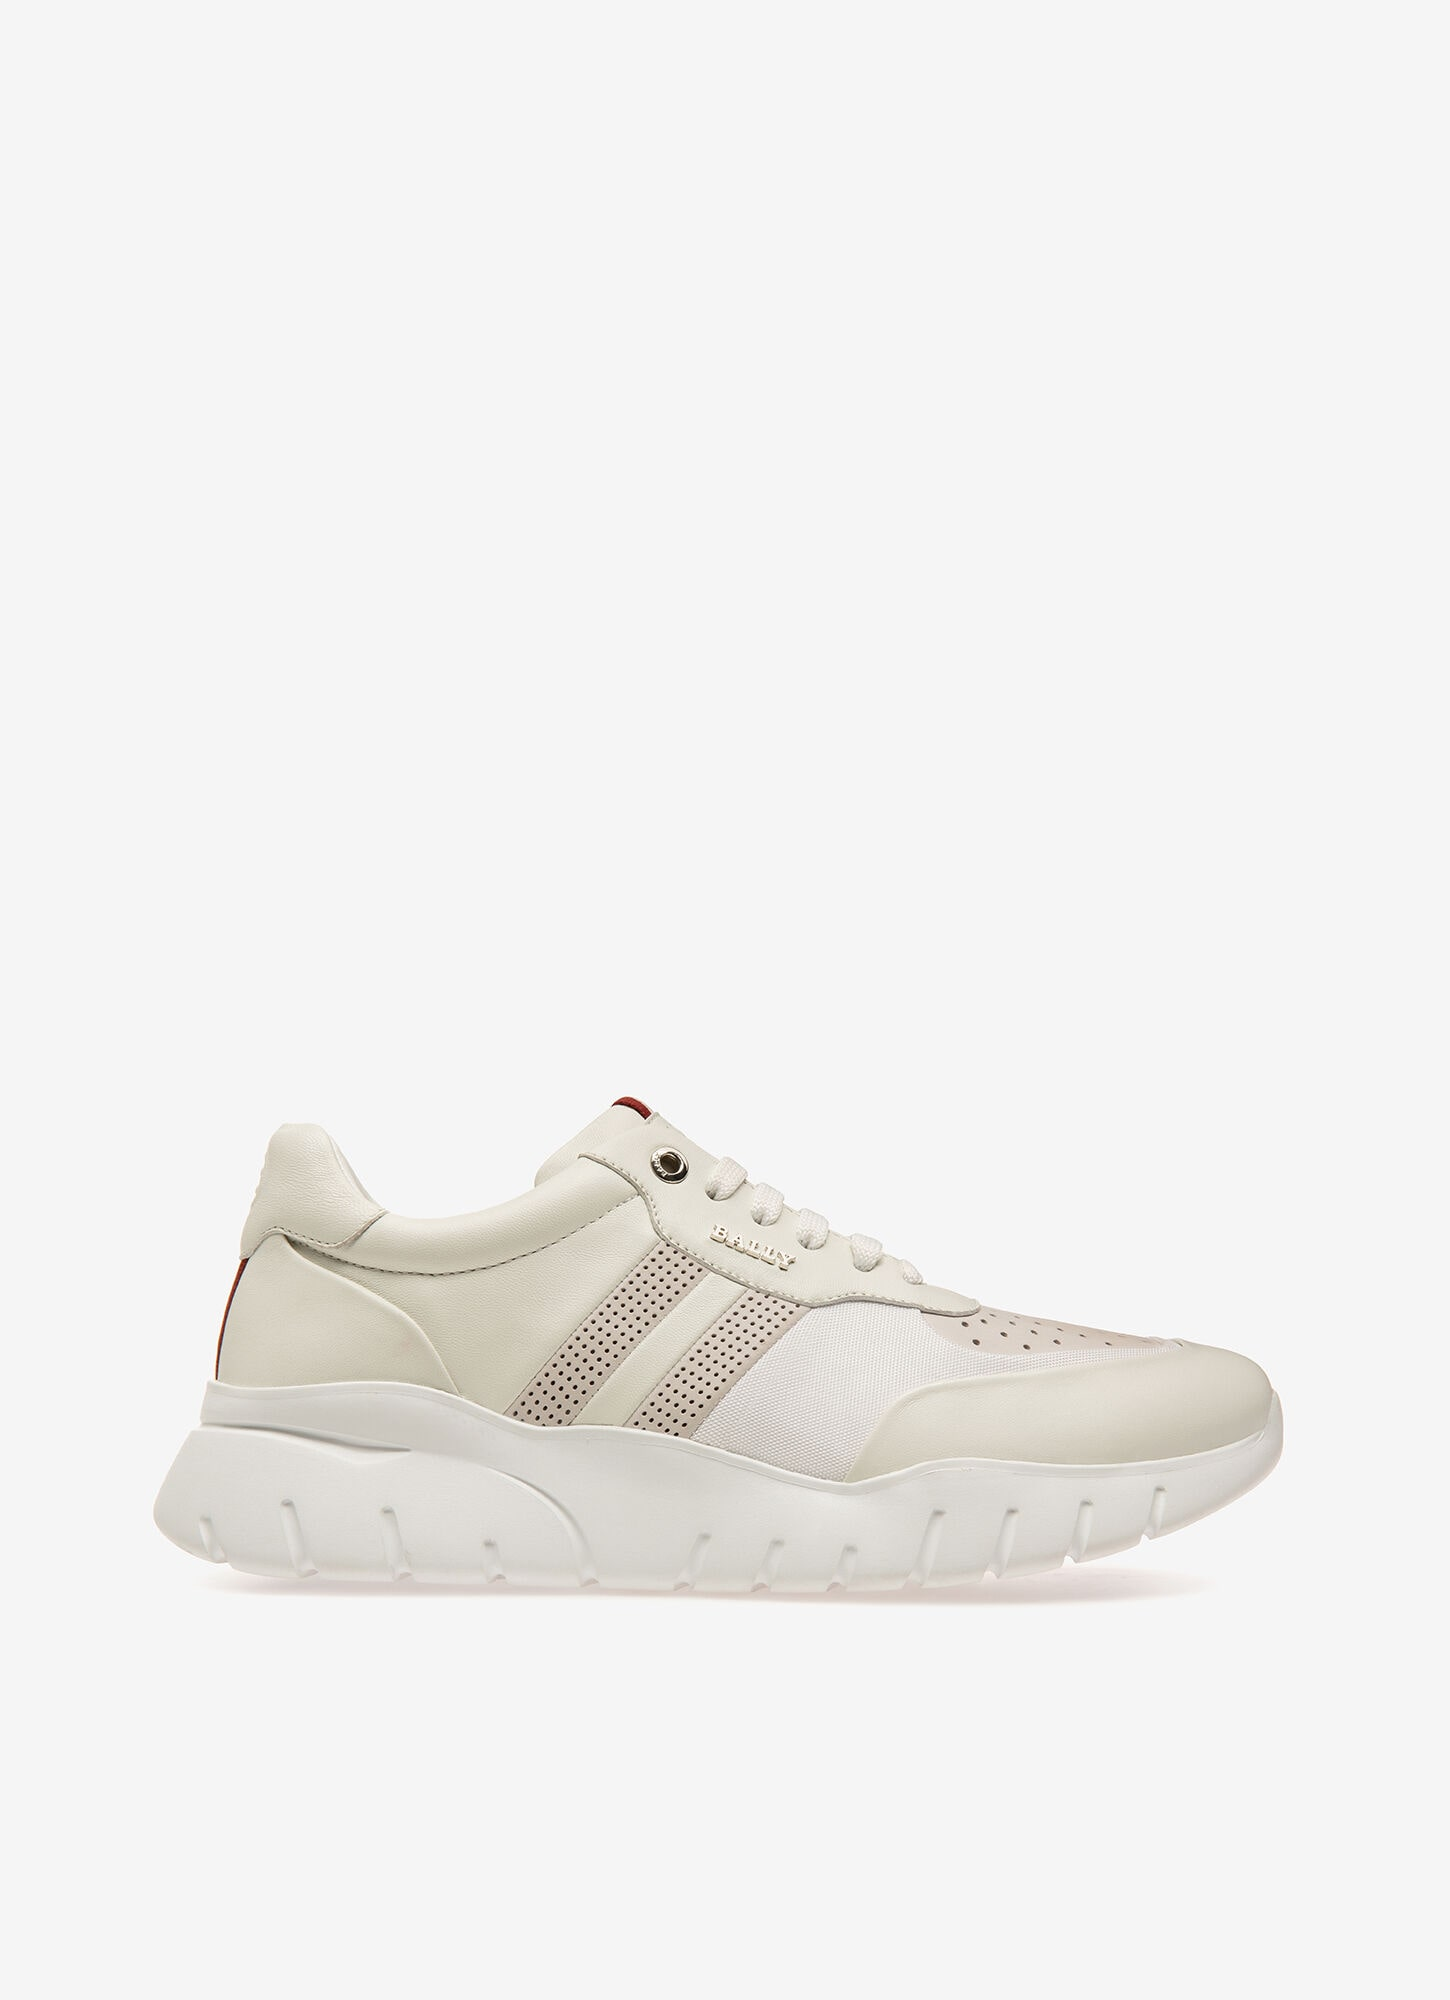 Bison| Mens Sneakers | White Leather